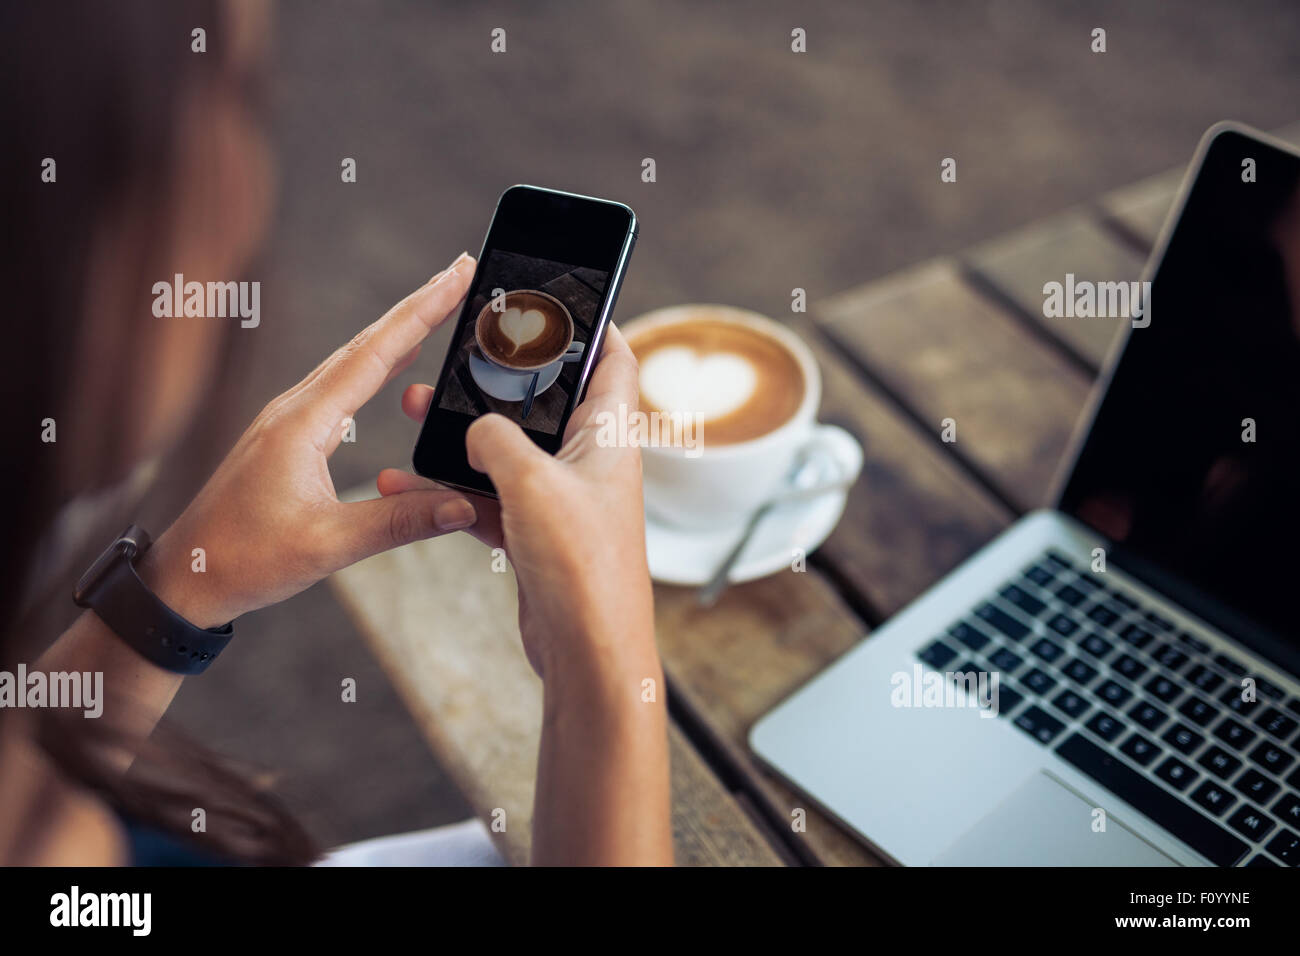 Woman taking a picture of a coffee cup with her smart phone while sitting at a coffee shop. - Stock Image